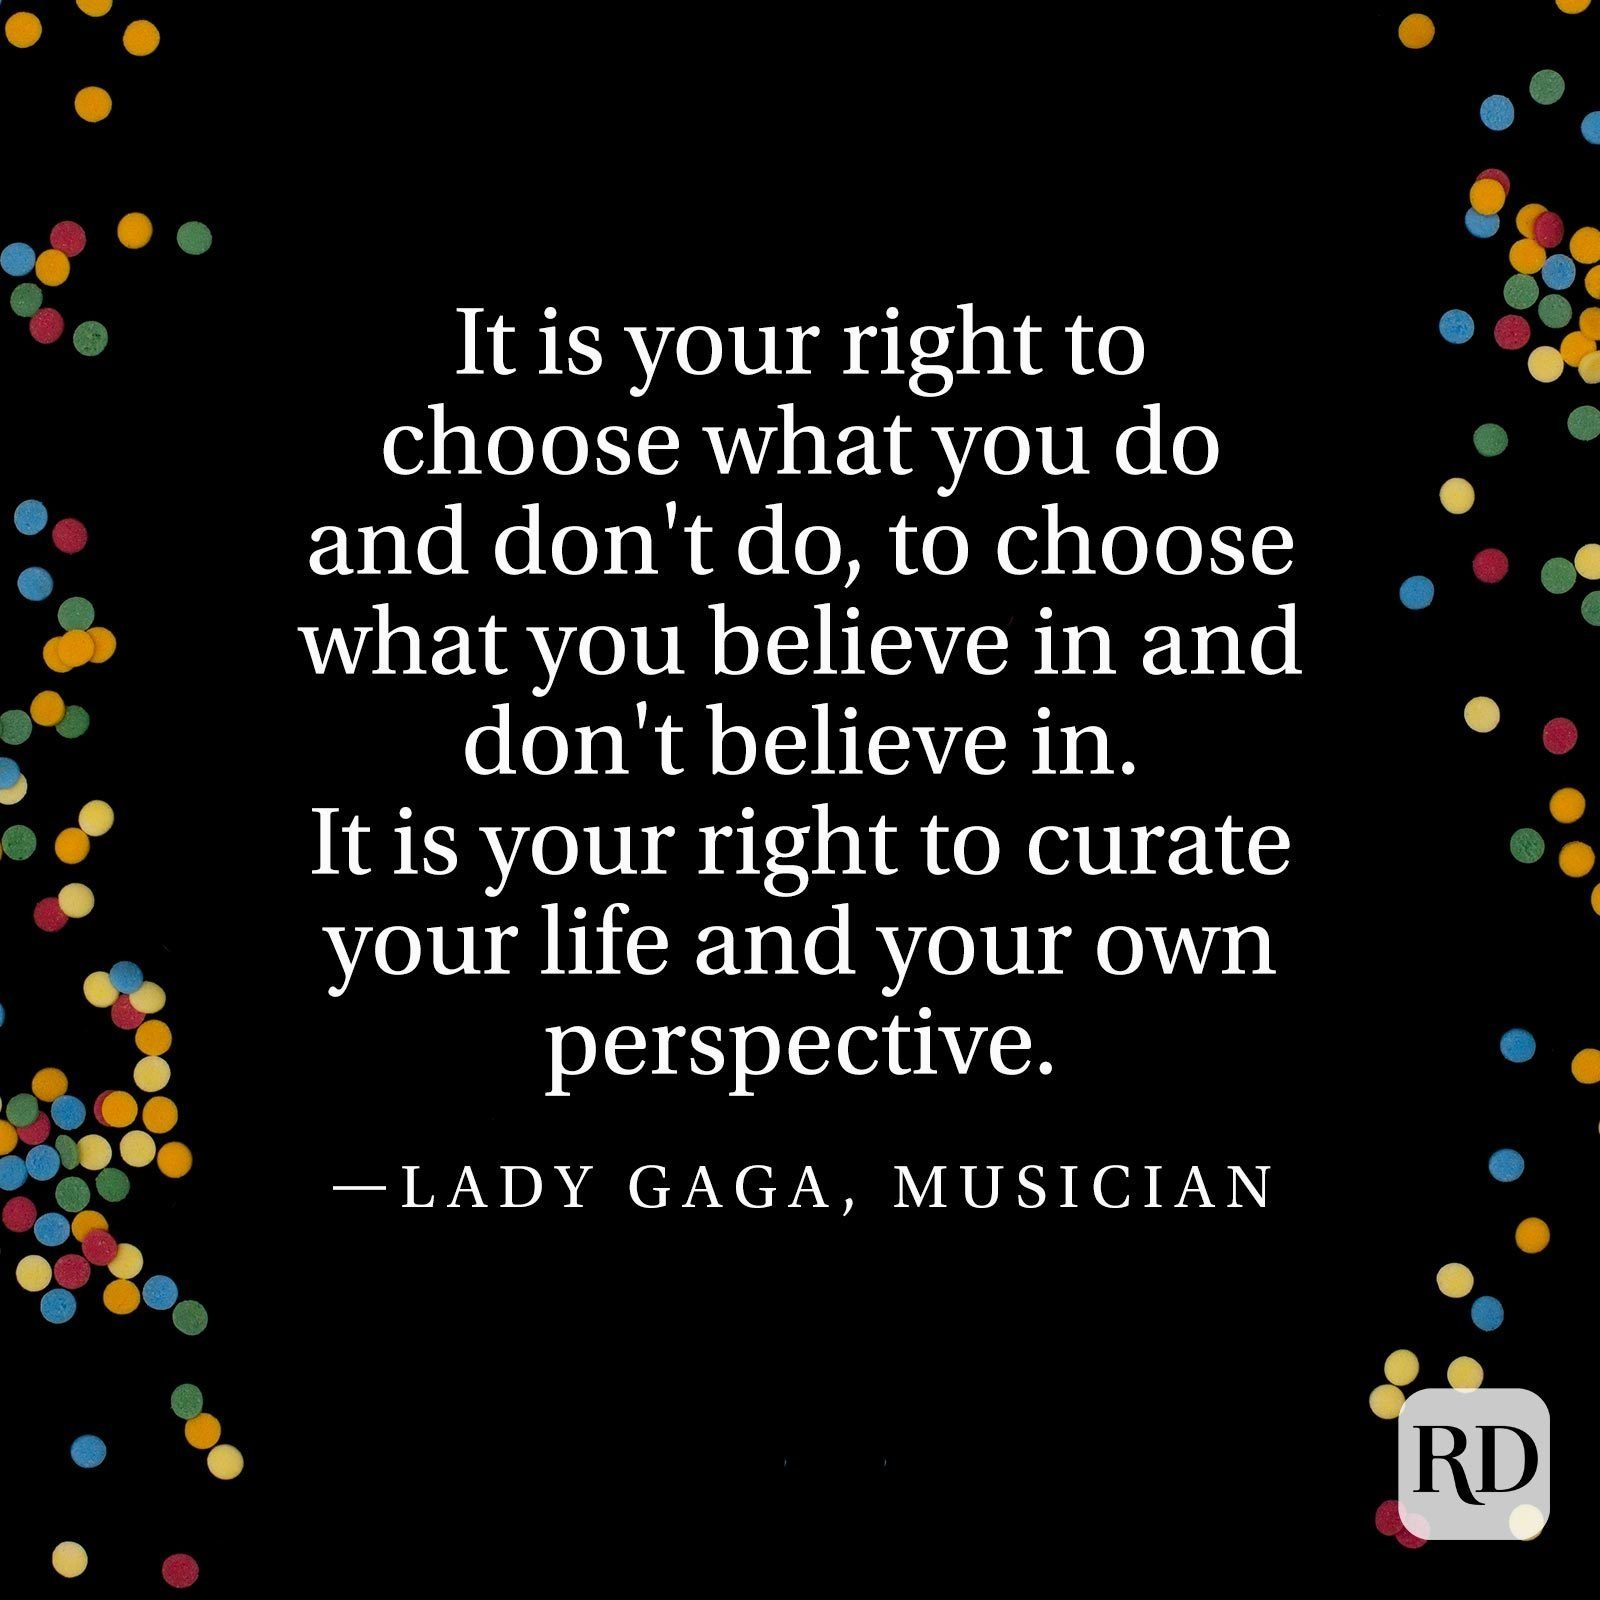 """""""It is your right to choose what you do and don't do, to choose what you believe in and don't believe in. It is your right to curate your life and your own perspective."""" —Lady Gaga, musician"""